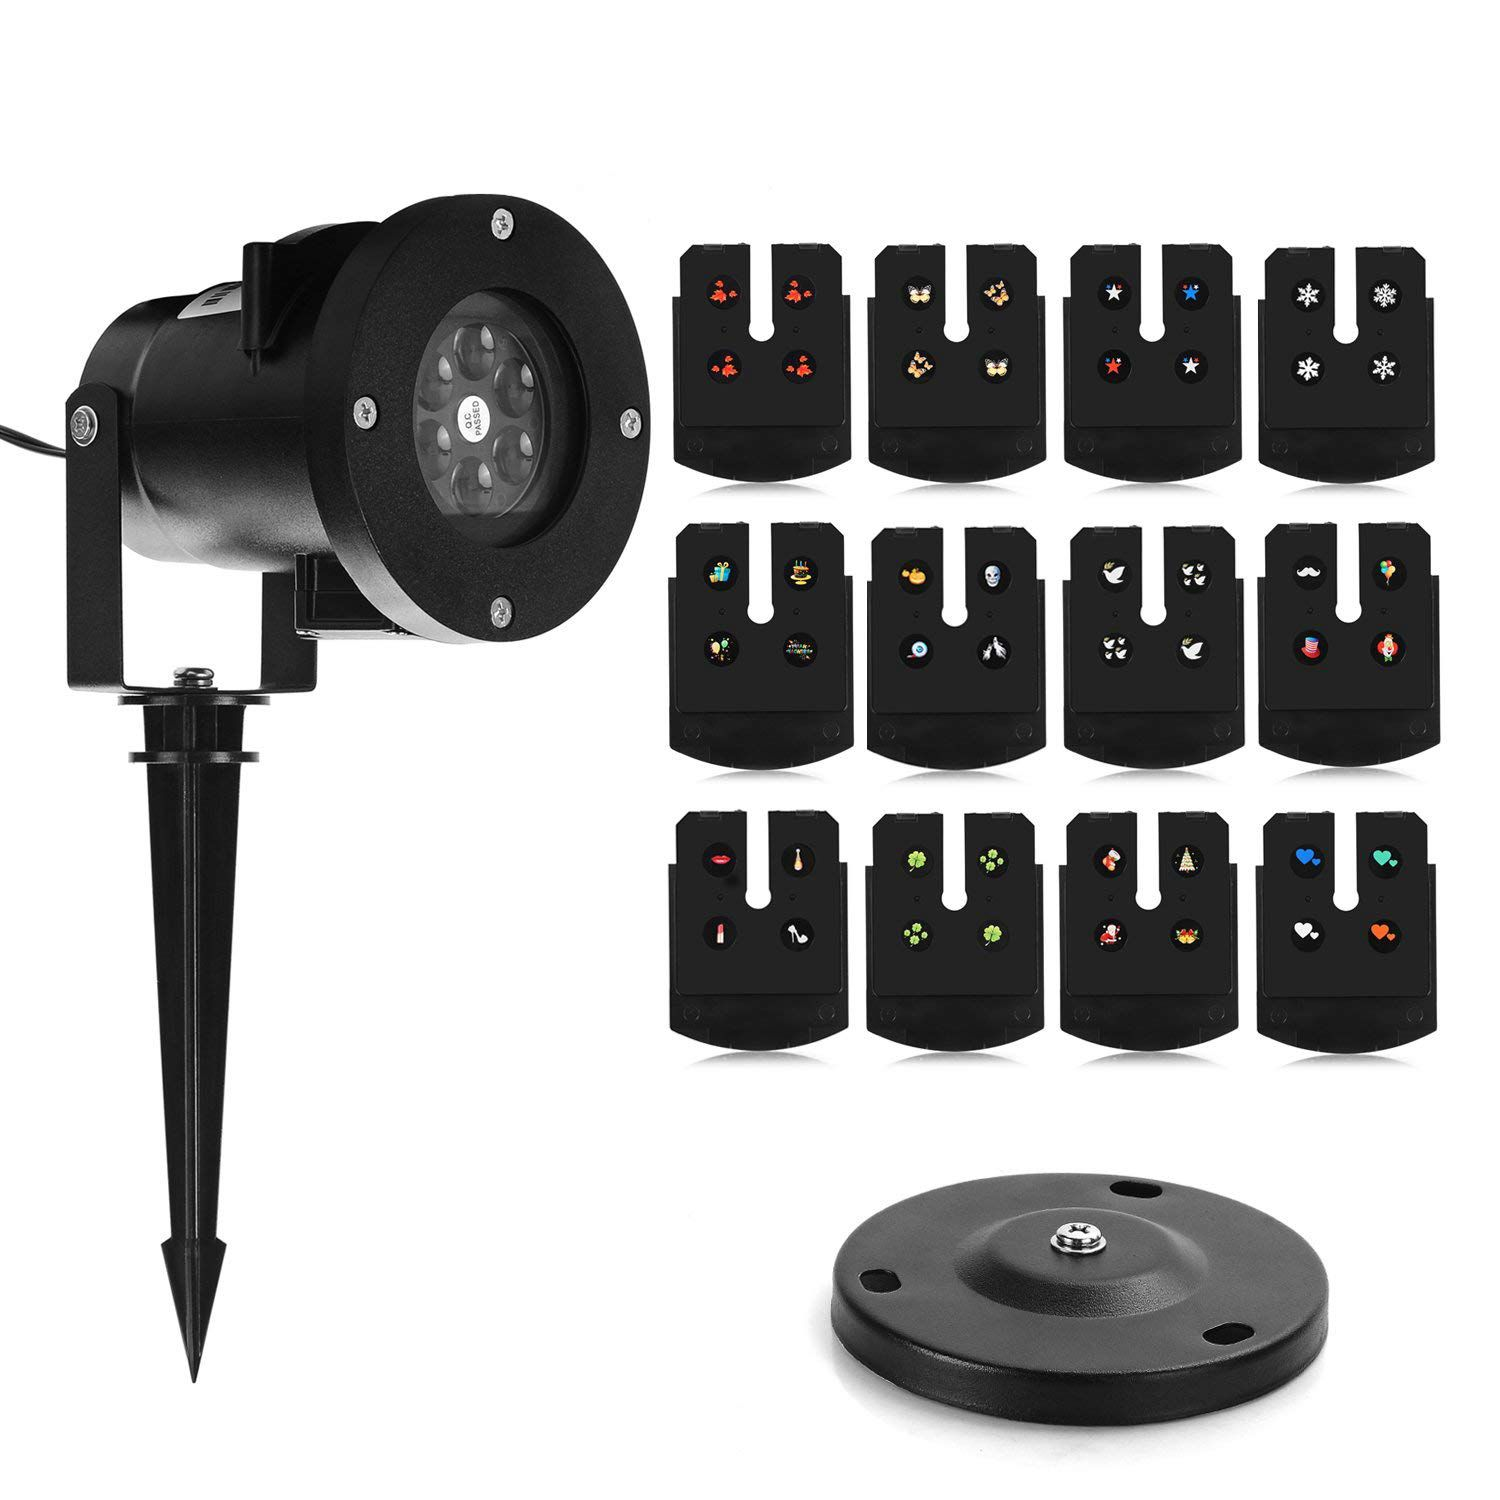 Holiday Projector Lights, LED Projector Lights with 12 Switchable Patterns, Indoor and Outdoor for Holiday Landscape Decoration